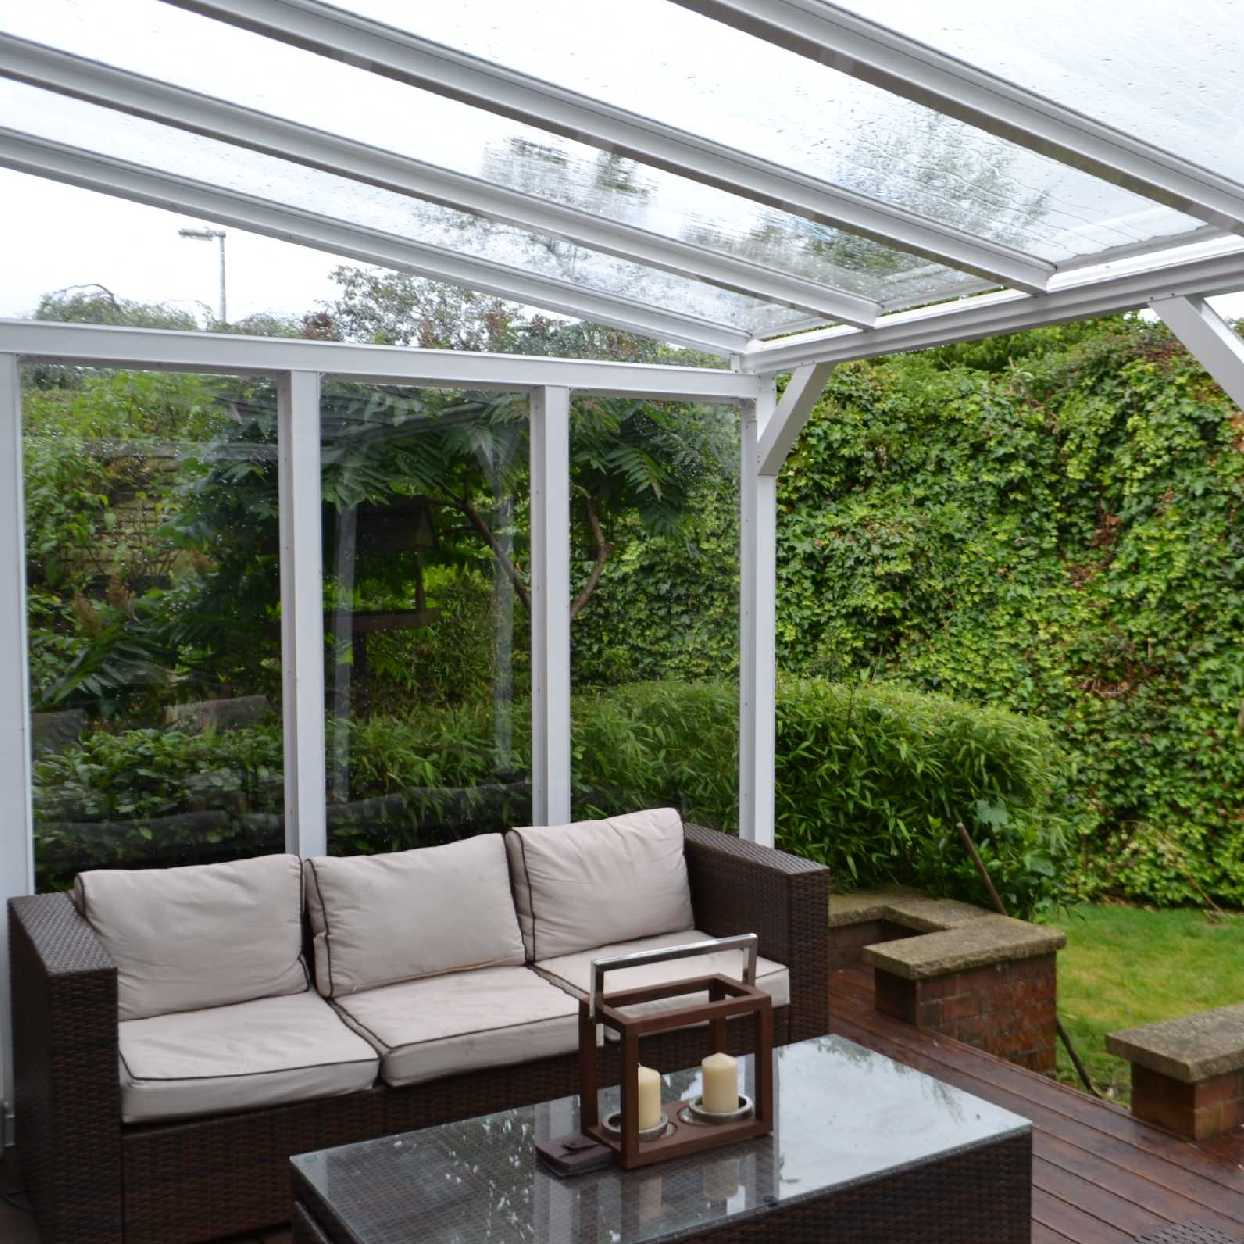 Great selection of Omega Smart Lean-To Canopy with 16mm Polycarbonate Glazing - 5.2m (W) x 2.0m (P), (3) Supporting Posts